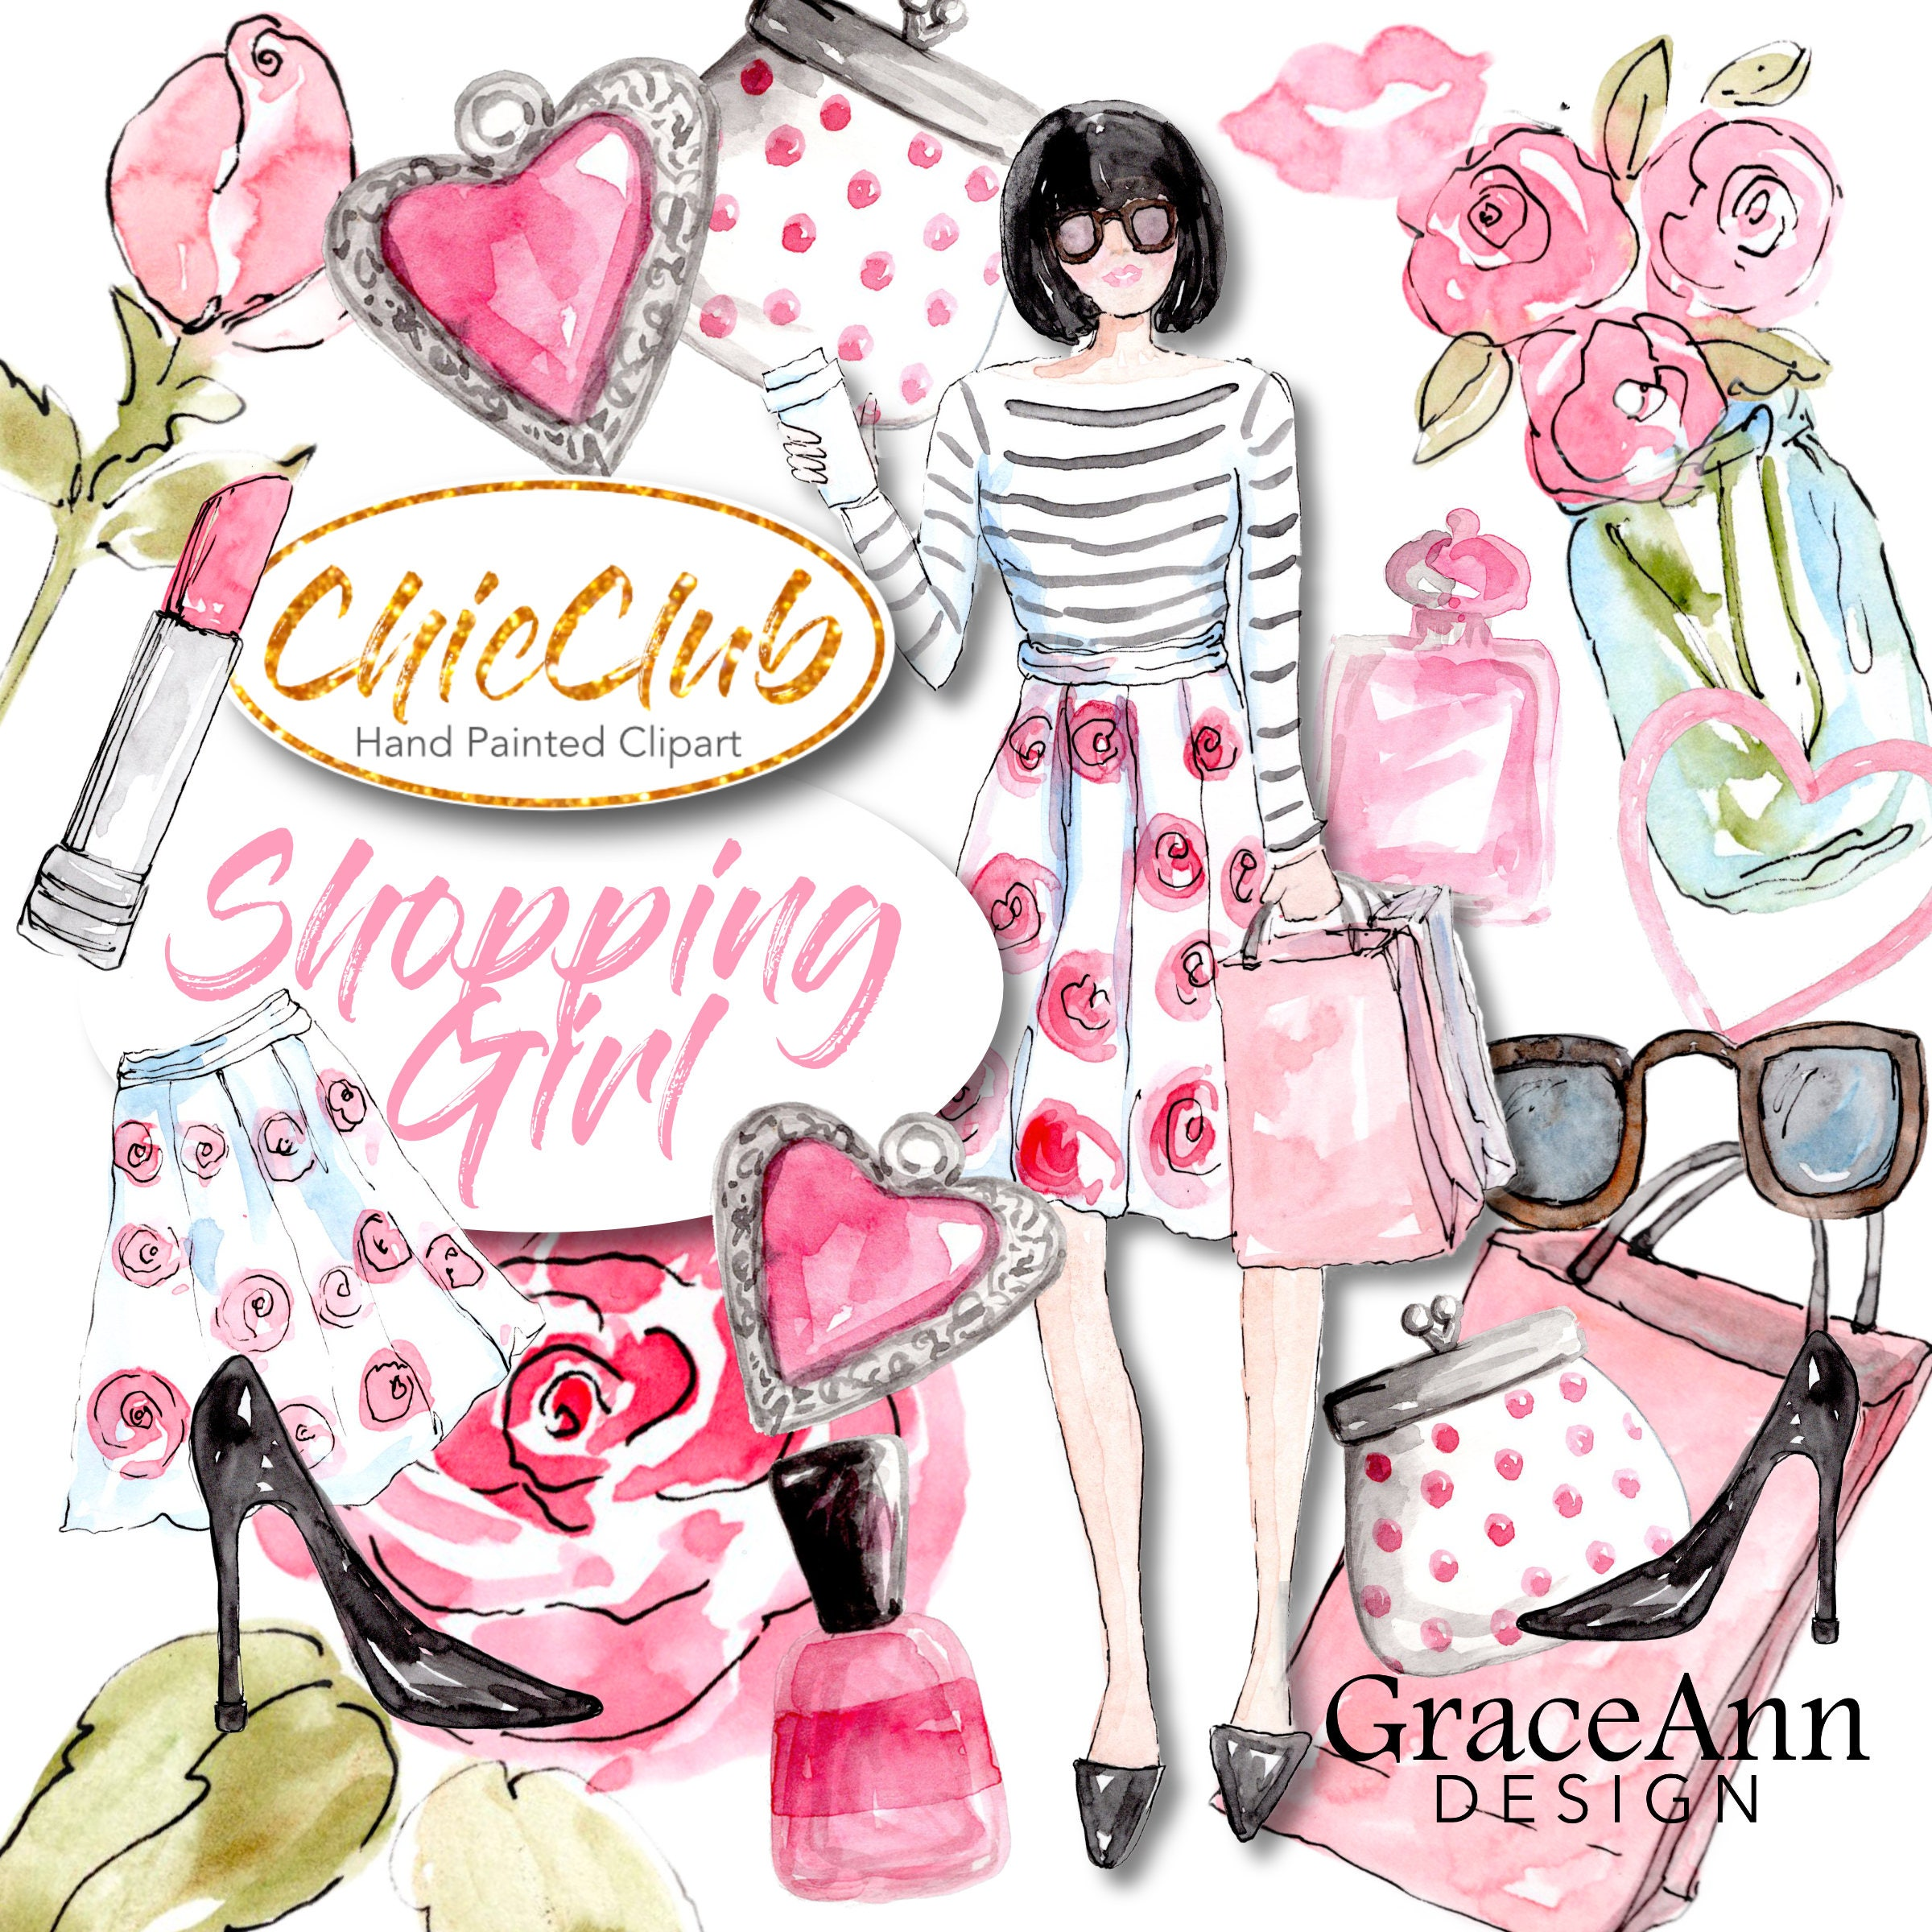 Fashion Clipart Shopping Girl DIY Invitations Girly Girl